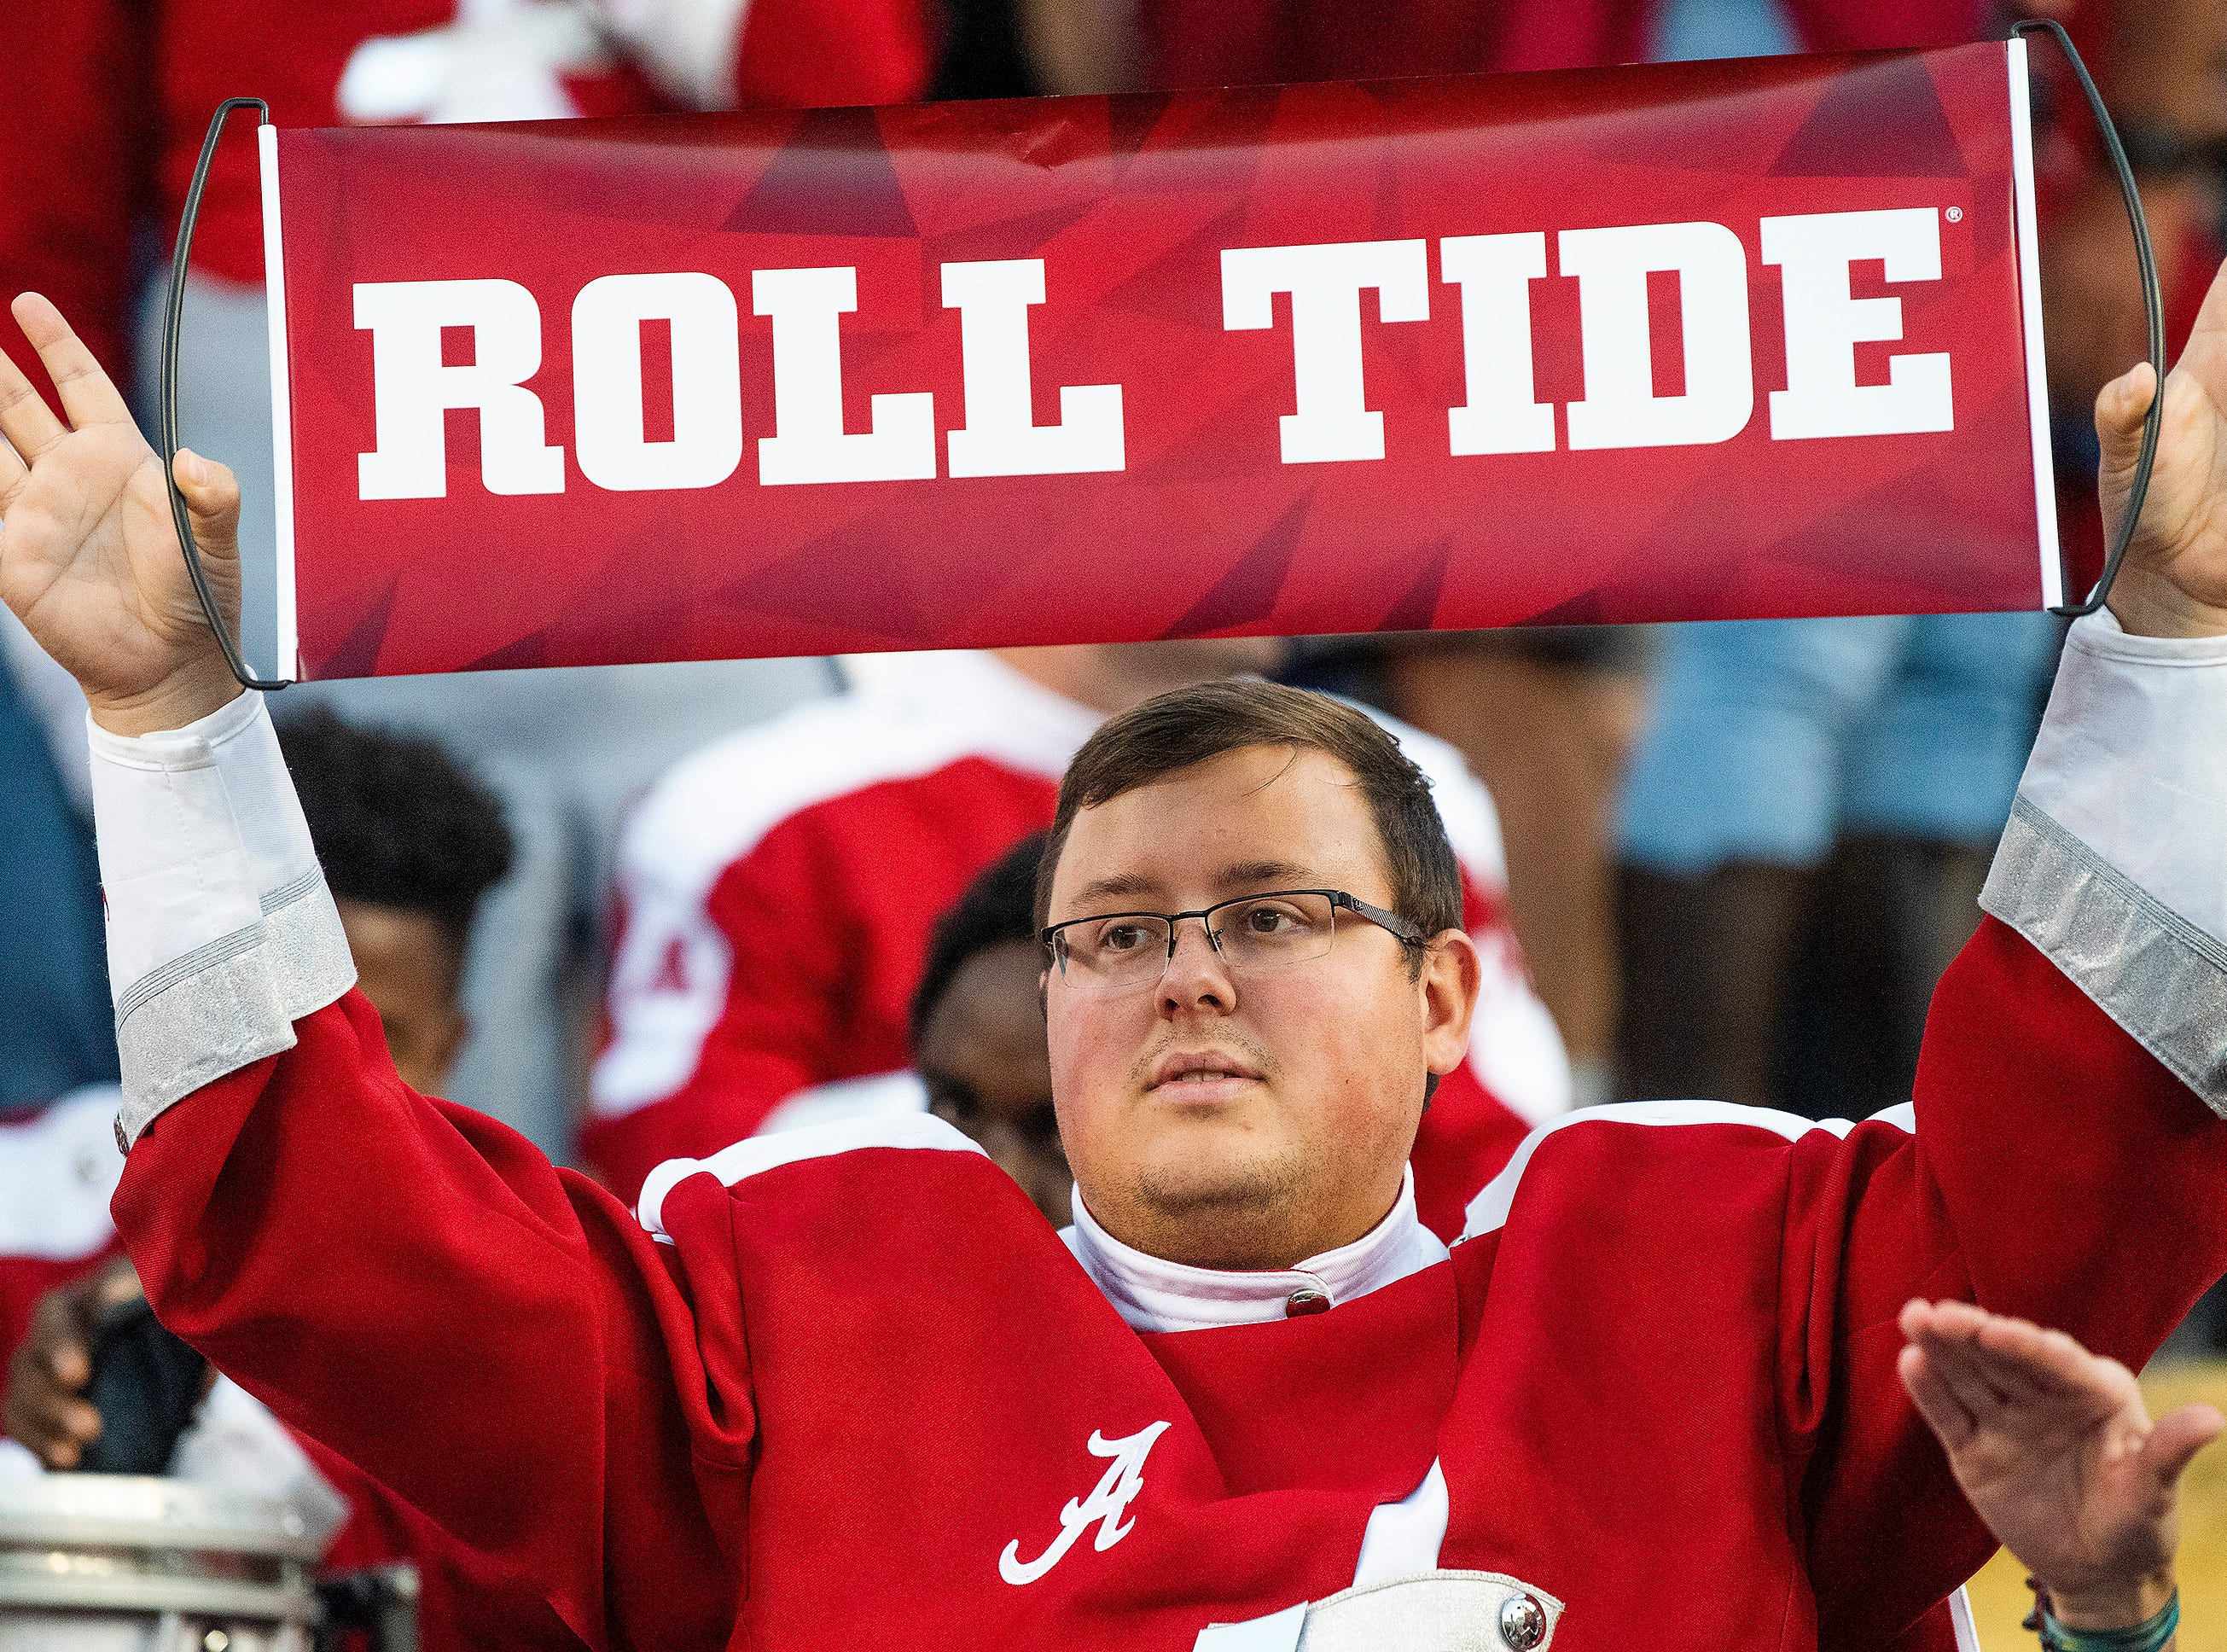 Alabama Band member at Tiger Stadium in Baton Rouge, La., on Saturday November 3, 2018.